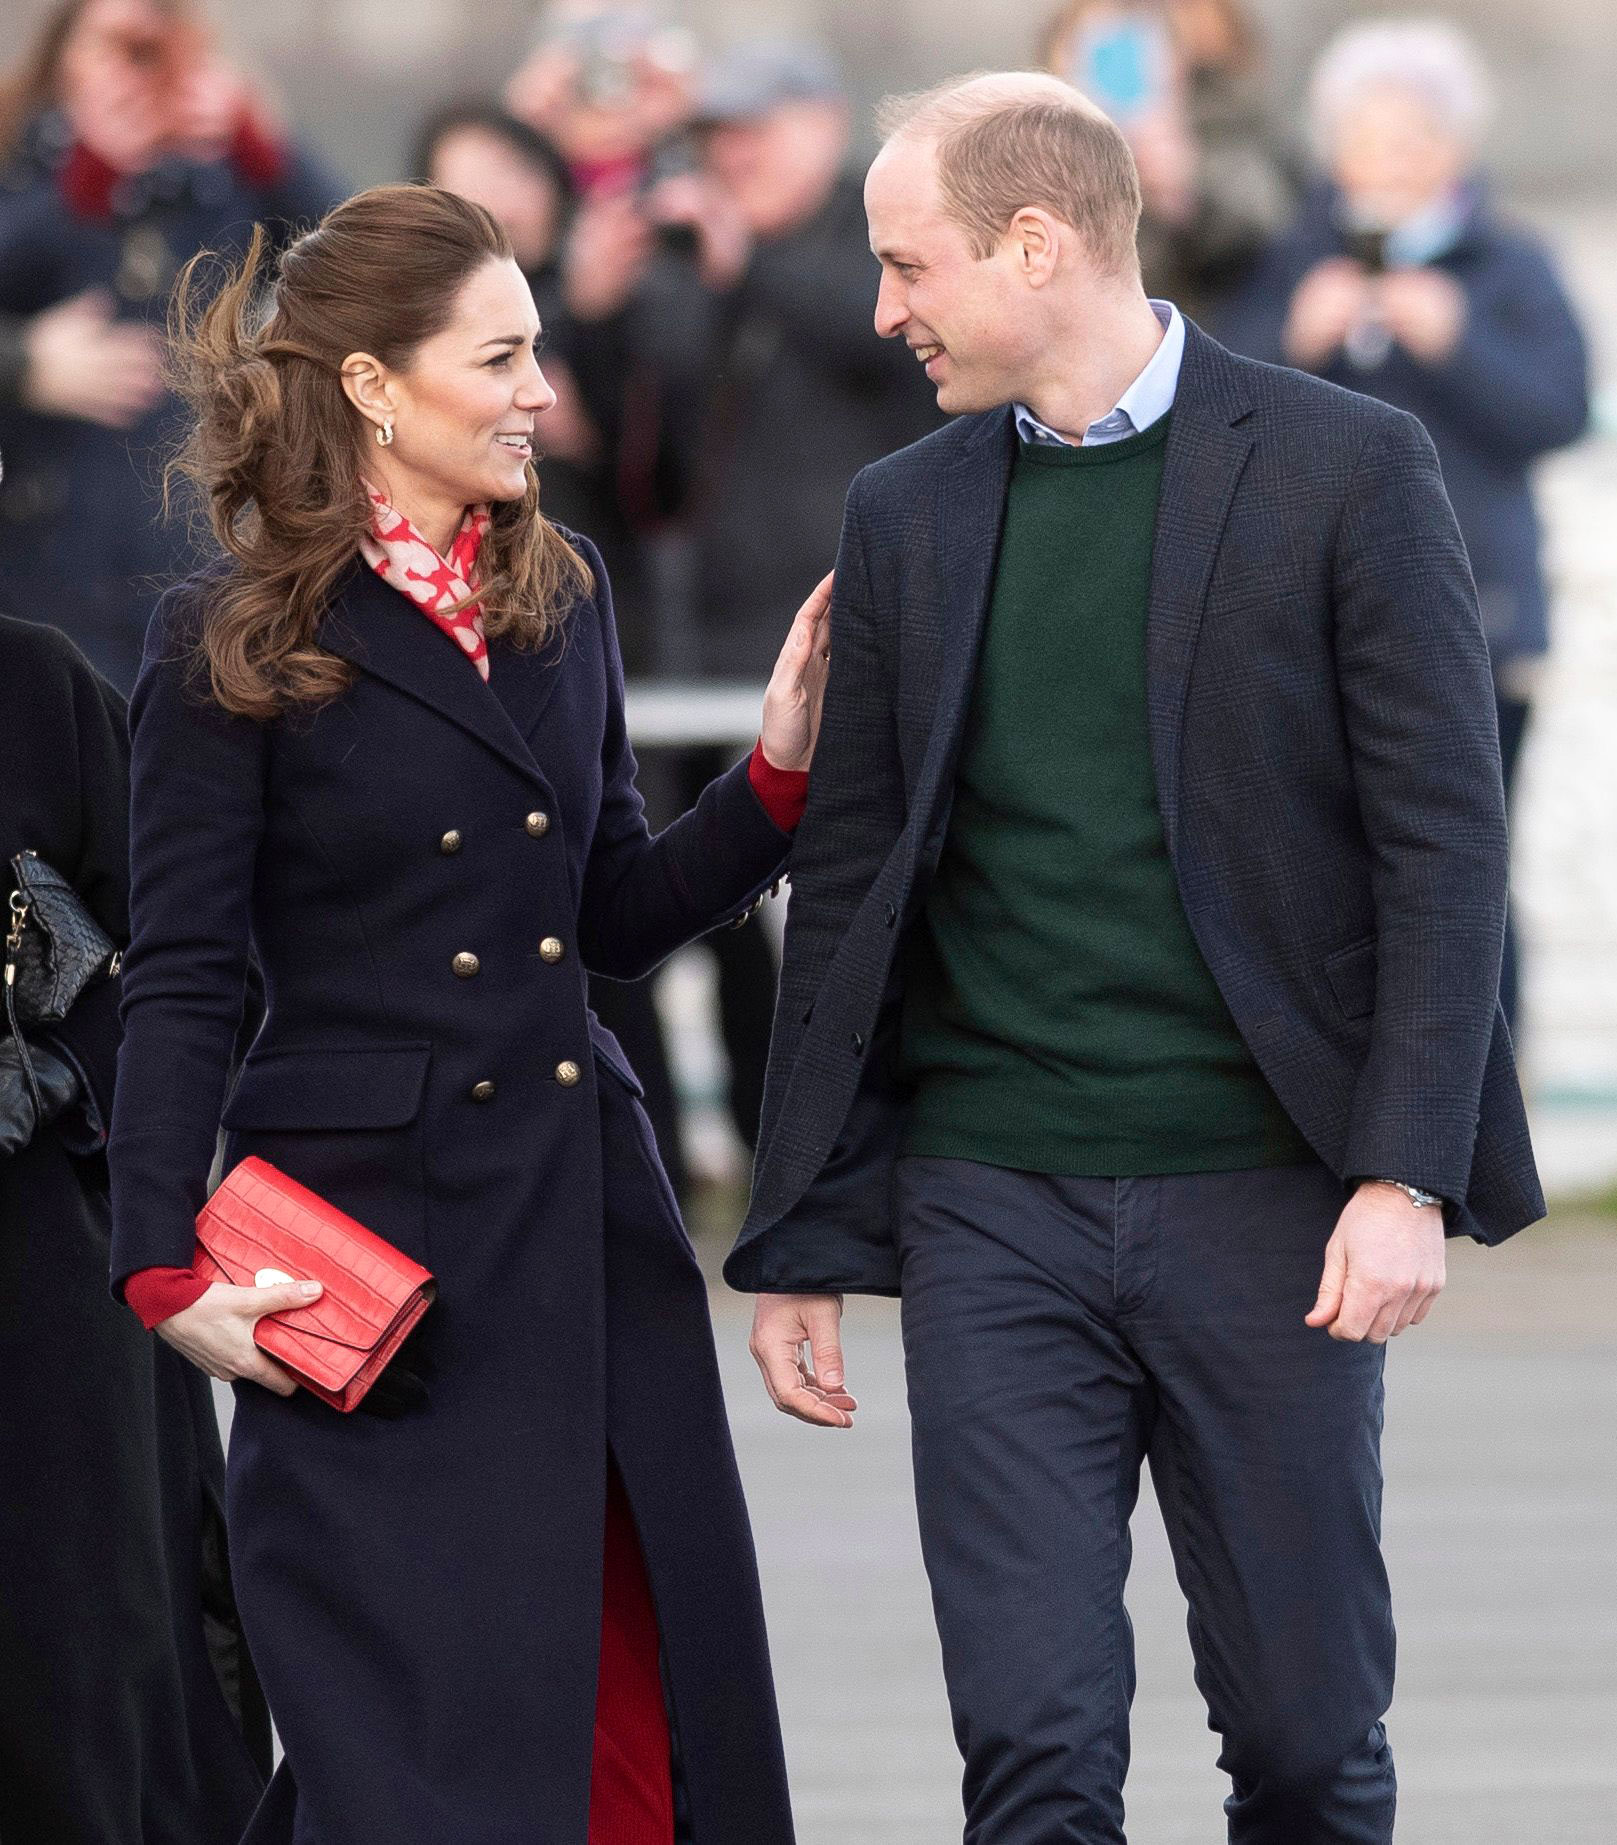 Prince William and Duchess Kate's 'Hectic Schedule' After Family Drama Has 'Brought Them Closer Together'-inline